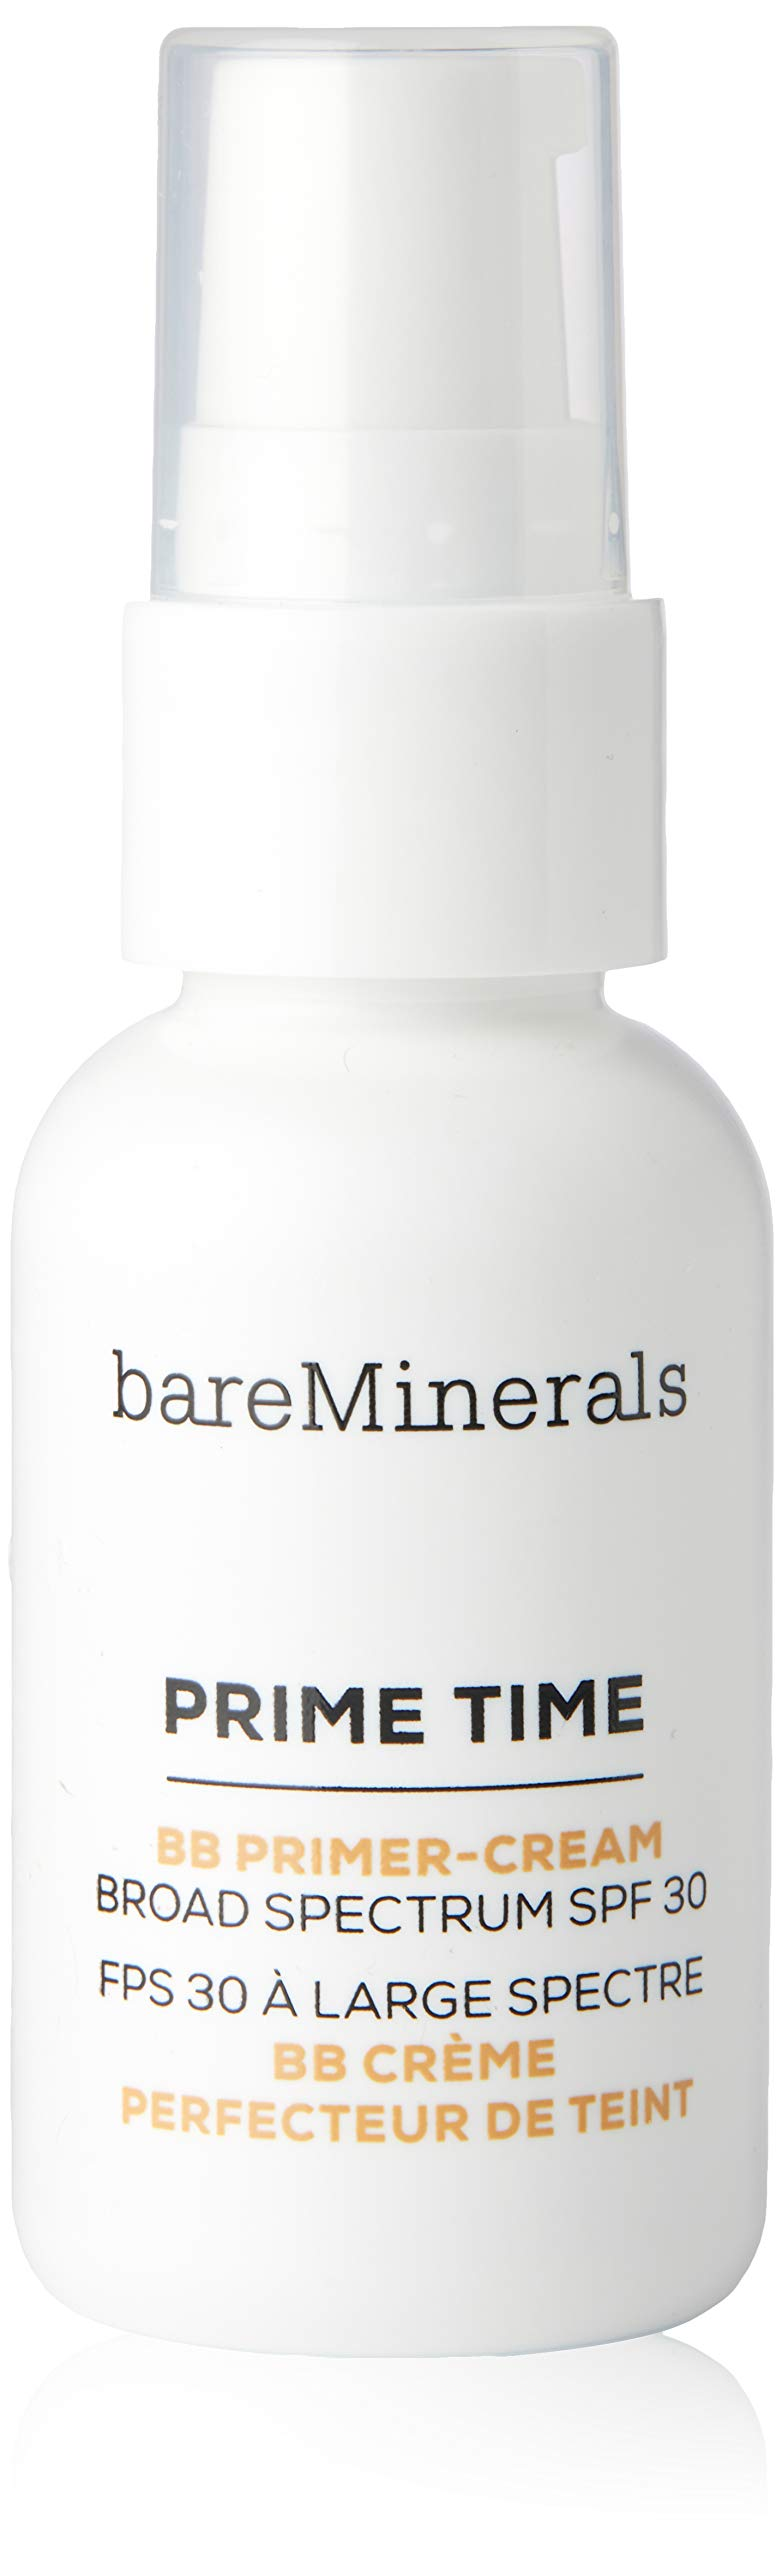 bareMinerals Prime Time BB SPF 30 Primer Cream, Fair, 1 Fluid Ounce by bareMinerals